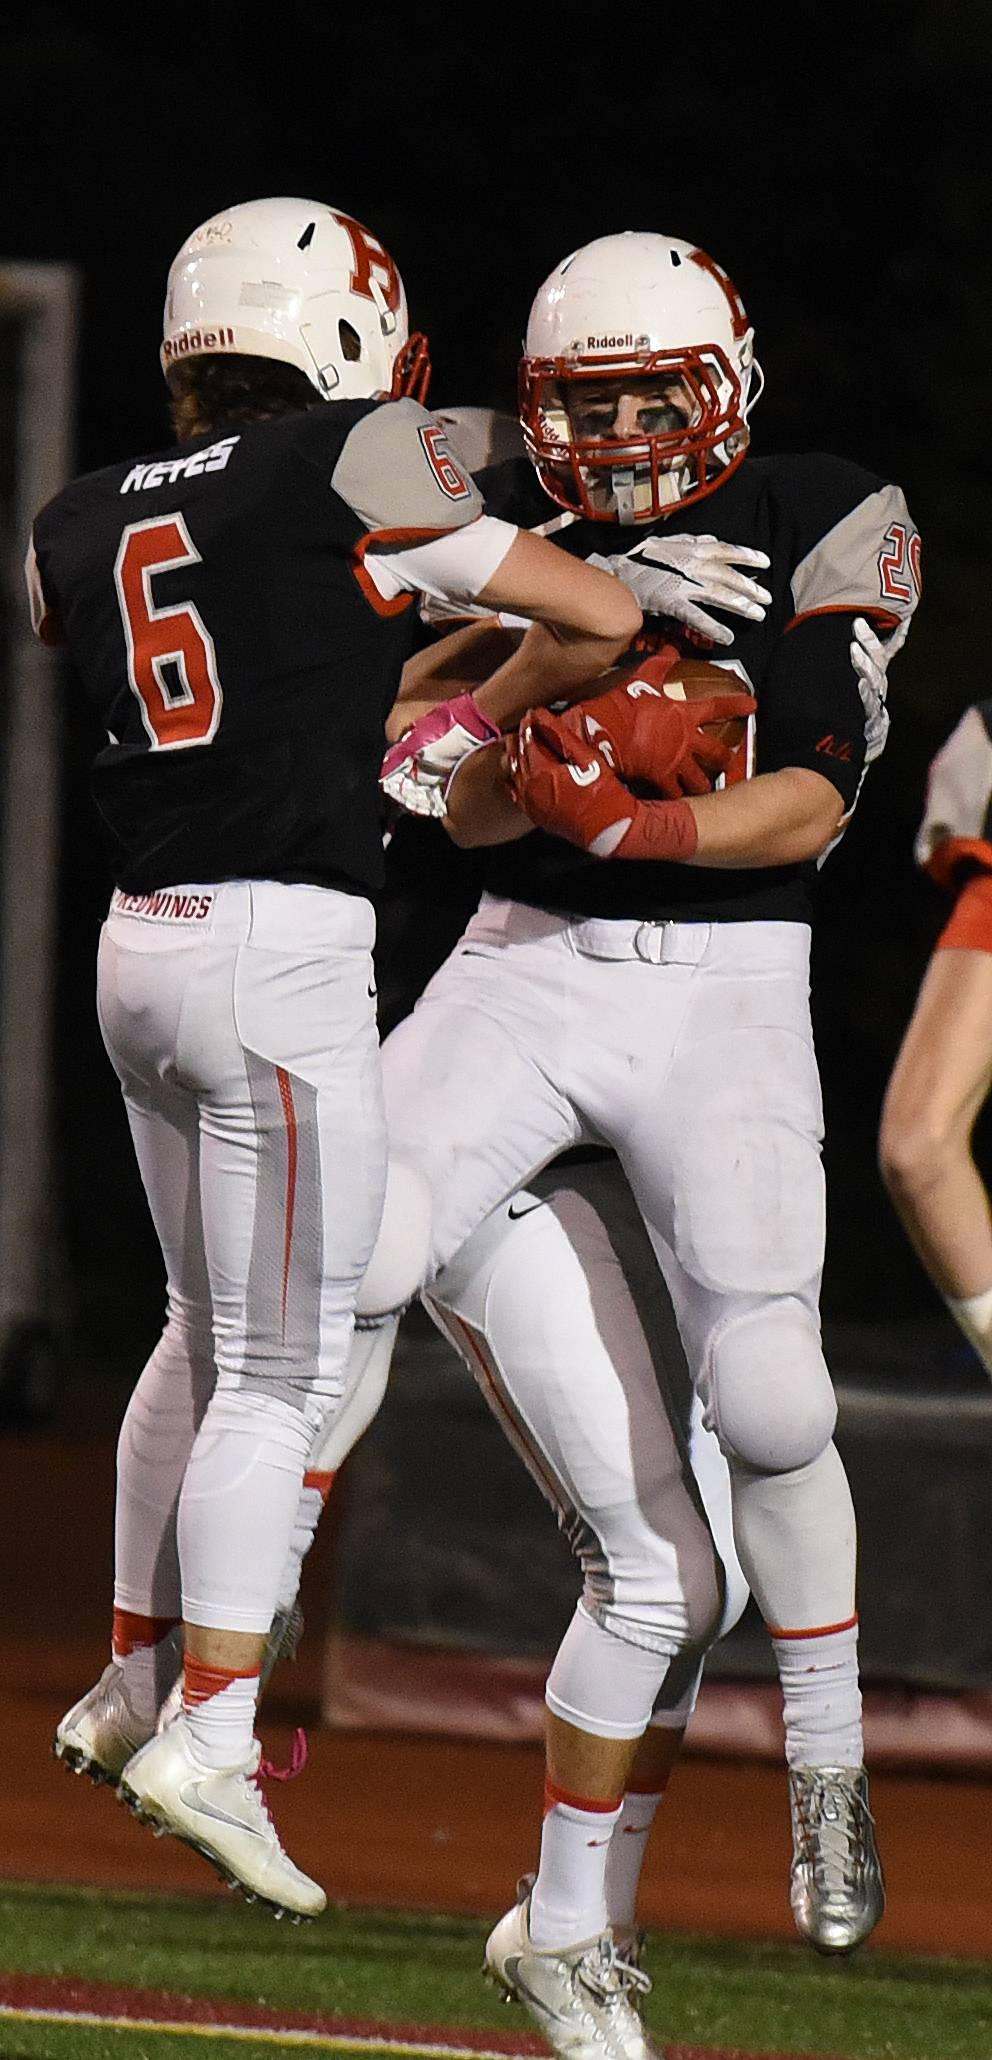 Benet's Nicholas Keyes (6) and Benet's Marty Dosen (20) celebrate a TD during the Hoffman Estates at Benet football game Friday.